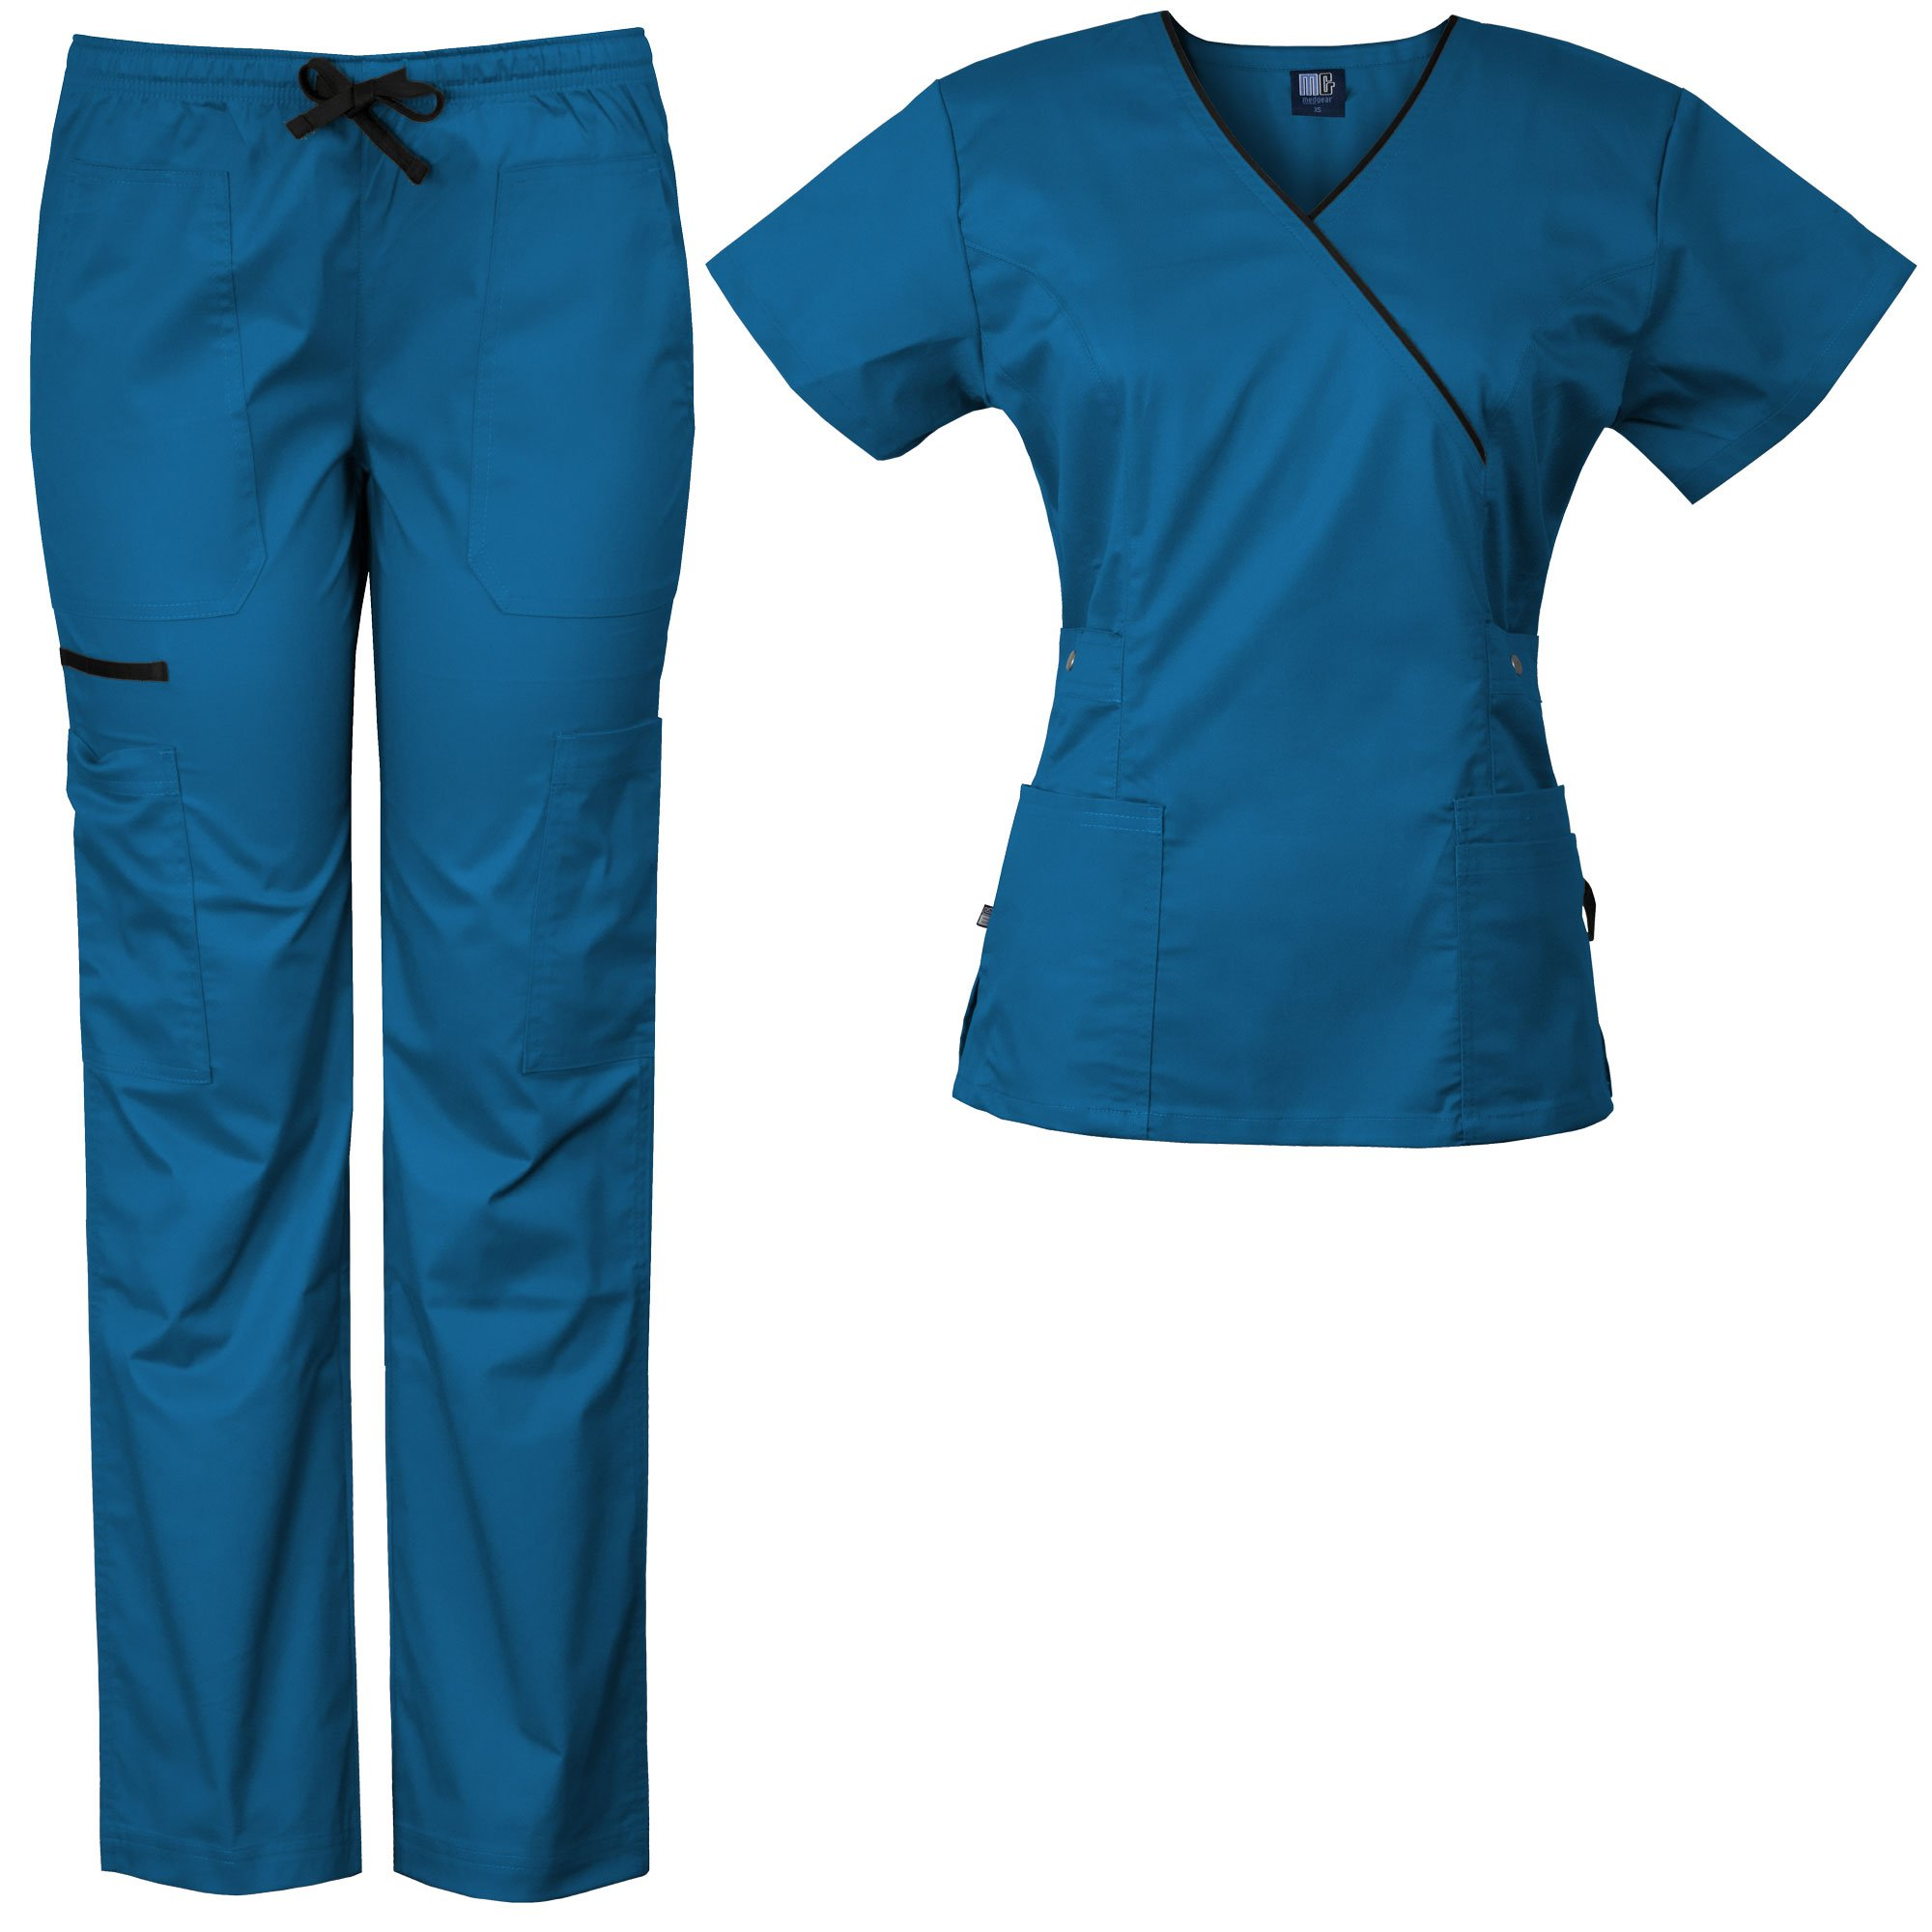 Medgear Women's Stretch Scrubs Set 5-Pocket Top & Multi-Pocket Pants (2XL, Aster Blue)